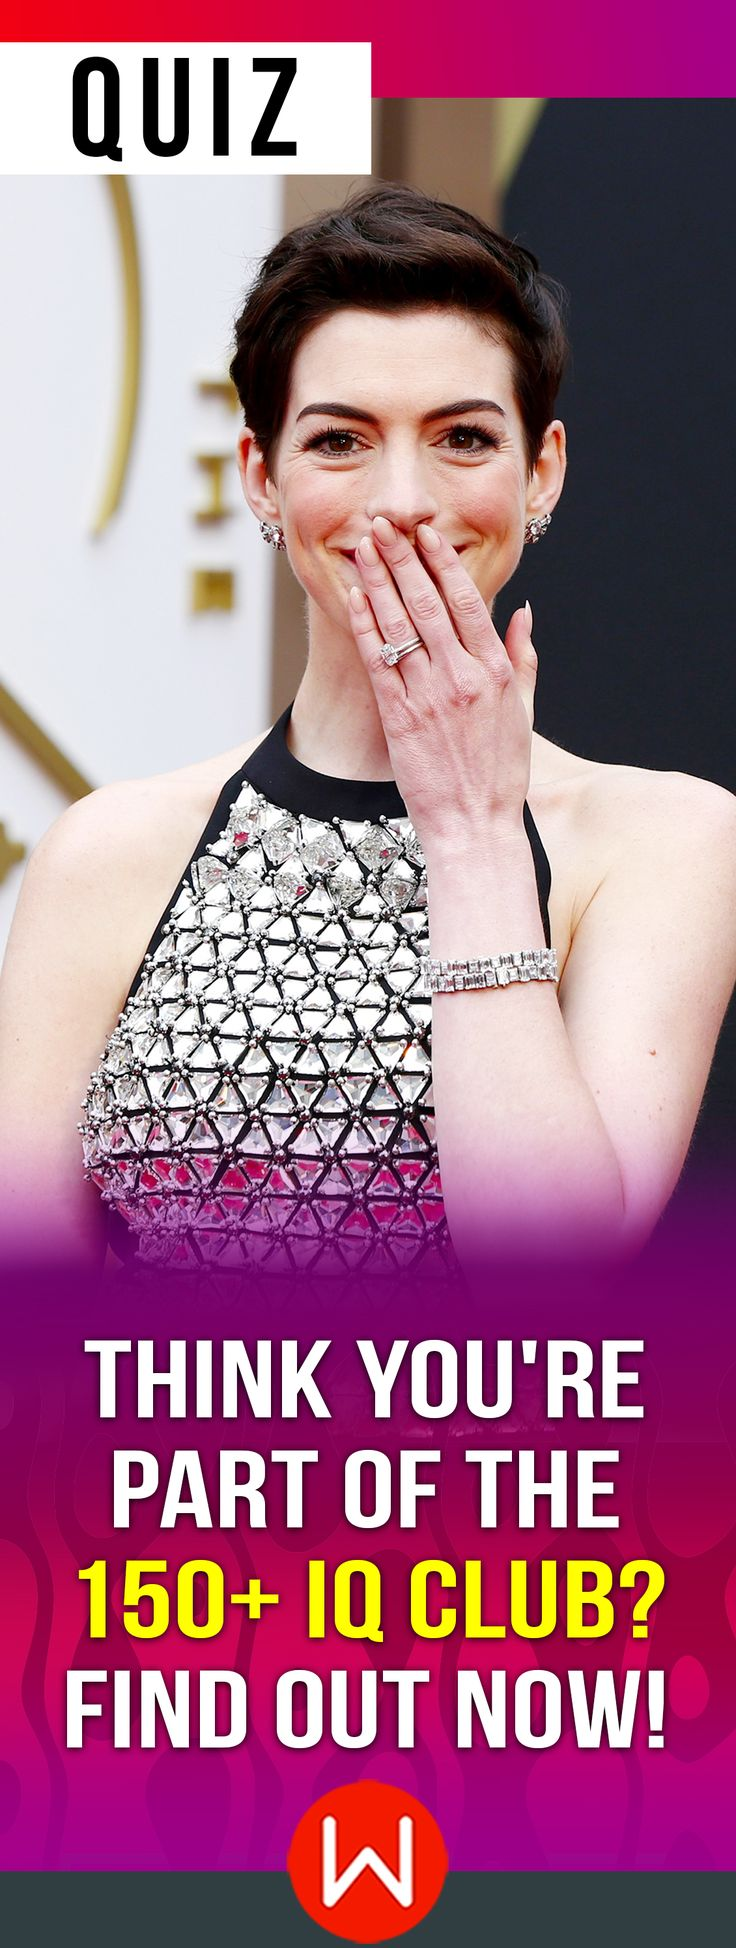 Are you smart enough to join THIS club? Knowledge quiz game. Do you think you can ace this IQ test? Answer a few questions and we'll let you know if you are in the 150+ IQ club! Anne Hathaway is looking at you! Knowledge trivia, General knowledge quiz, Fun Quiz, Facts quiz.